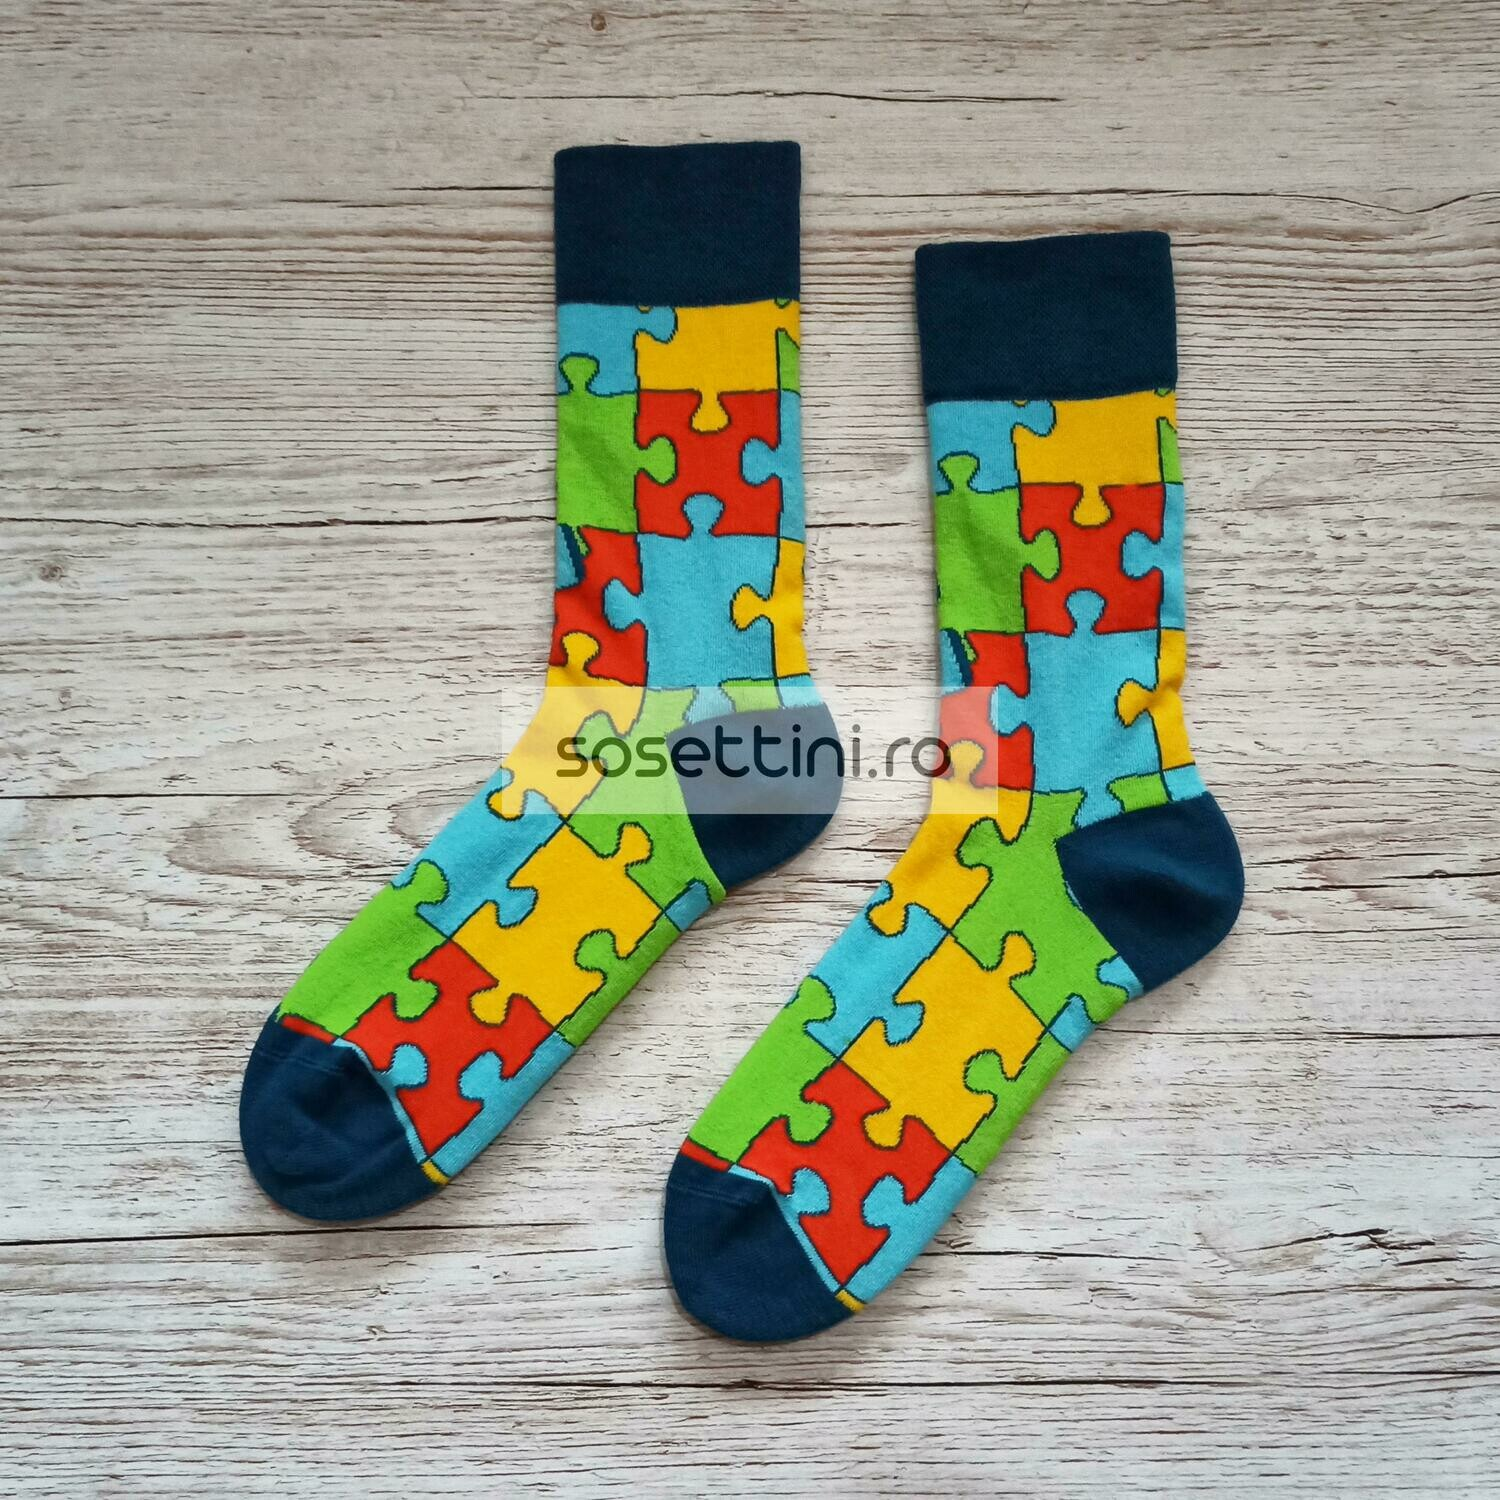 Sosete lungi colorate cu model puzzle, sosete vesele puzzle happy socks